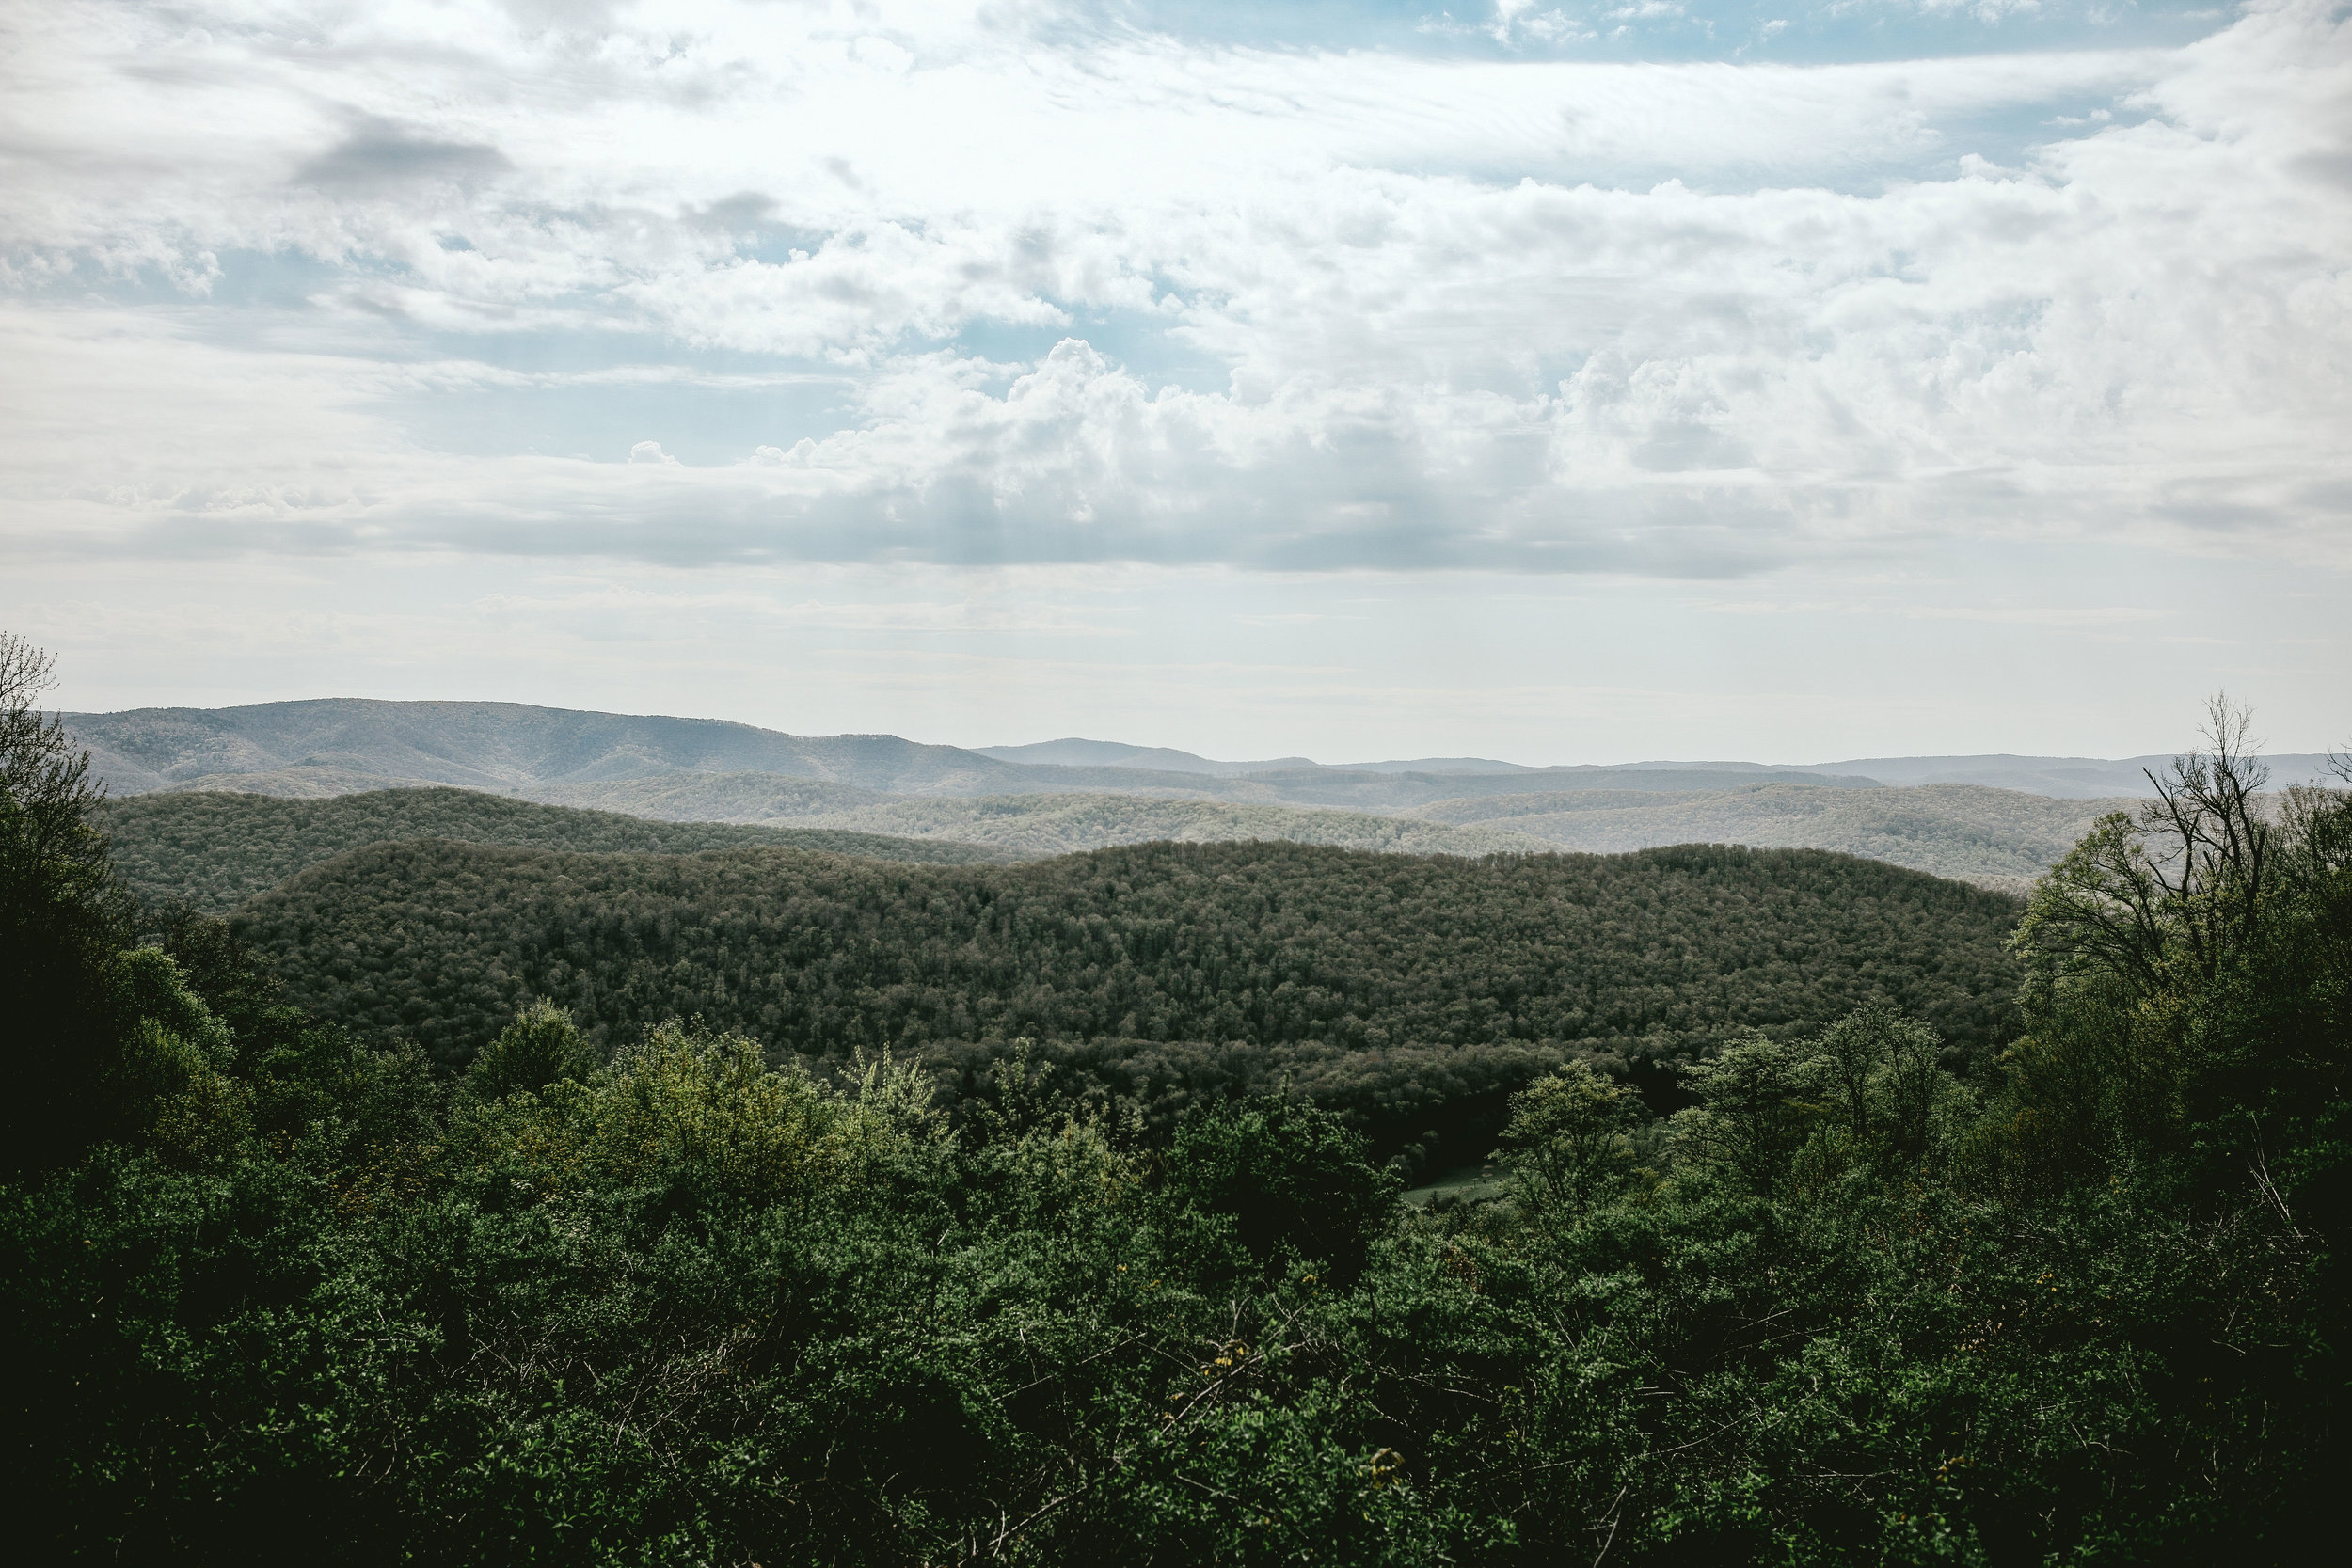 pictured above: The view from atop Cheat Mountain.